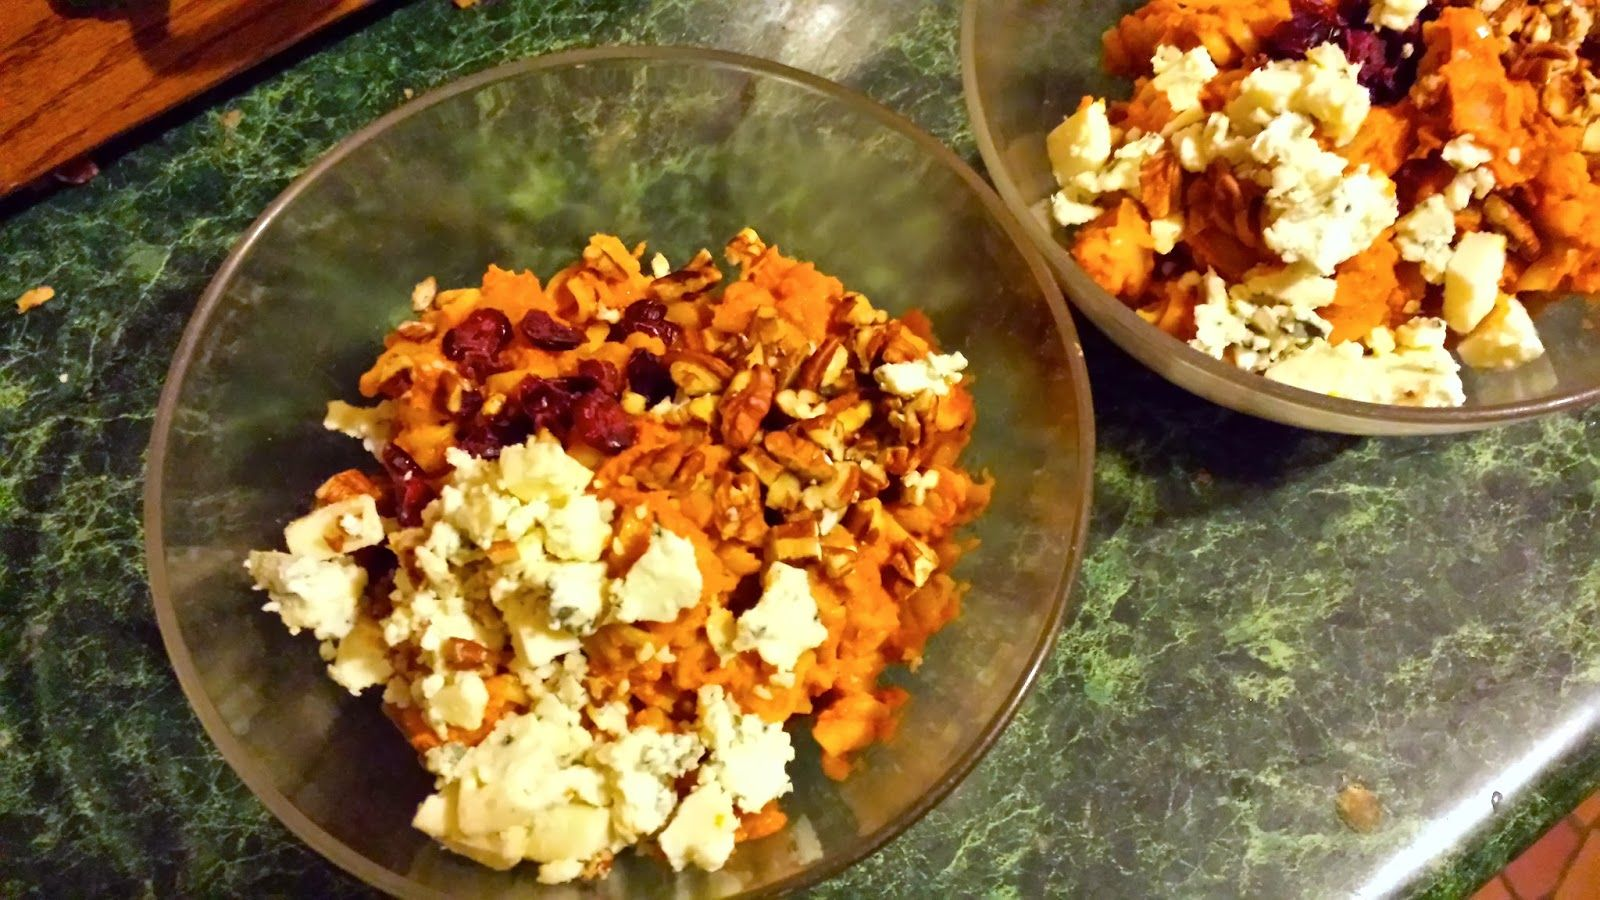 Pasta with Pumpkin and Cheese and More! Goat cheese, blue cheese, dried cranberries, and chopped pecans.